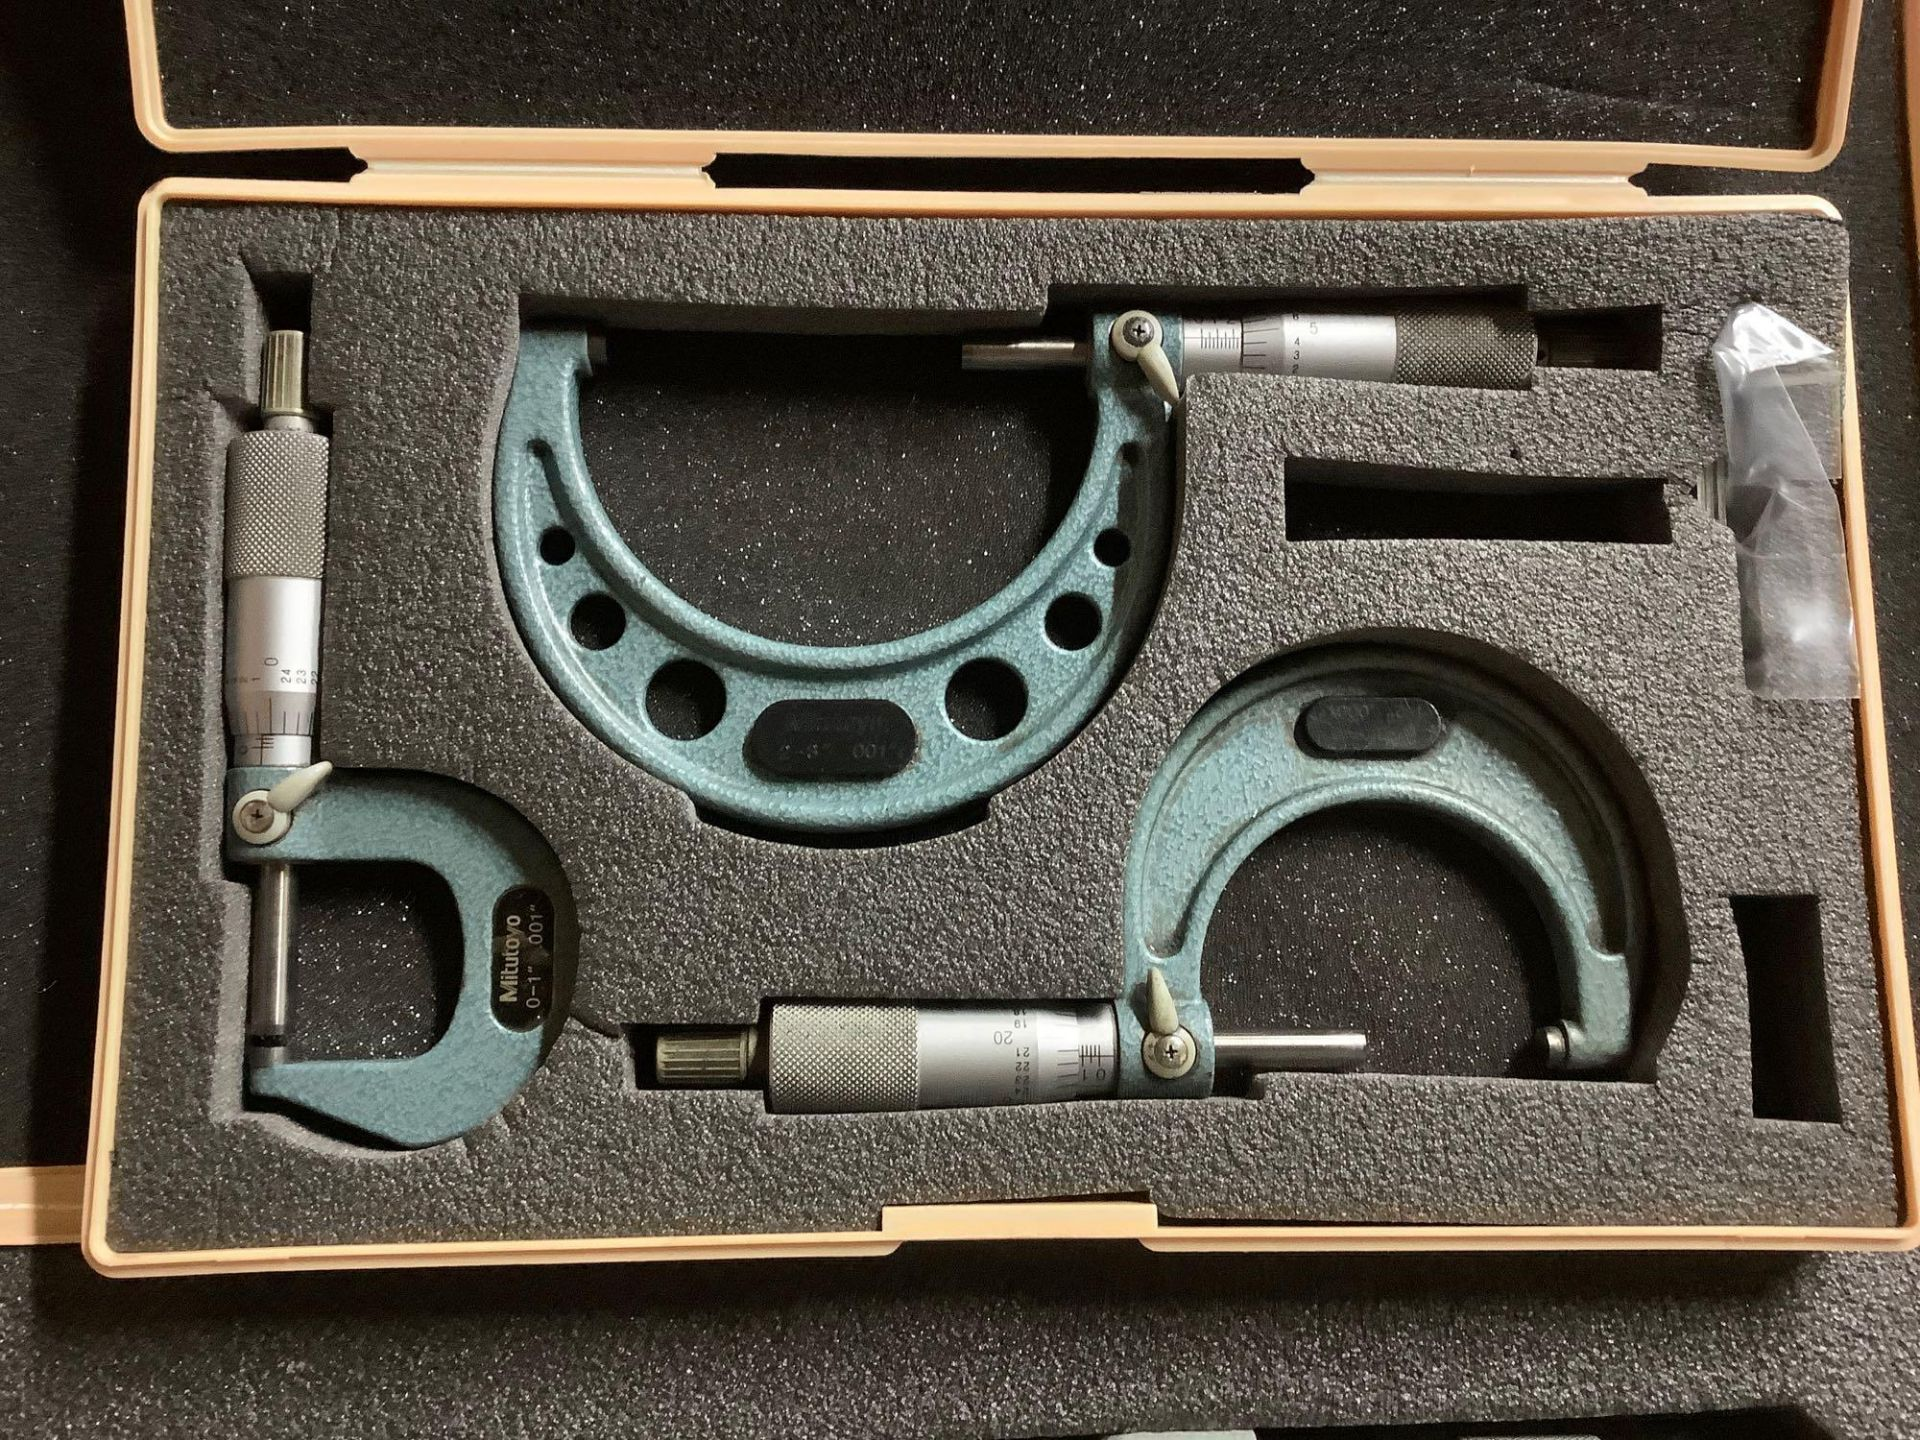 Lot of 3 Mitutoyo Micrometer Sets - Assorted sizes - Image 3 of 5